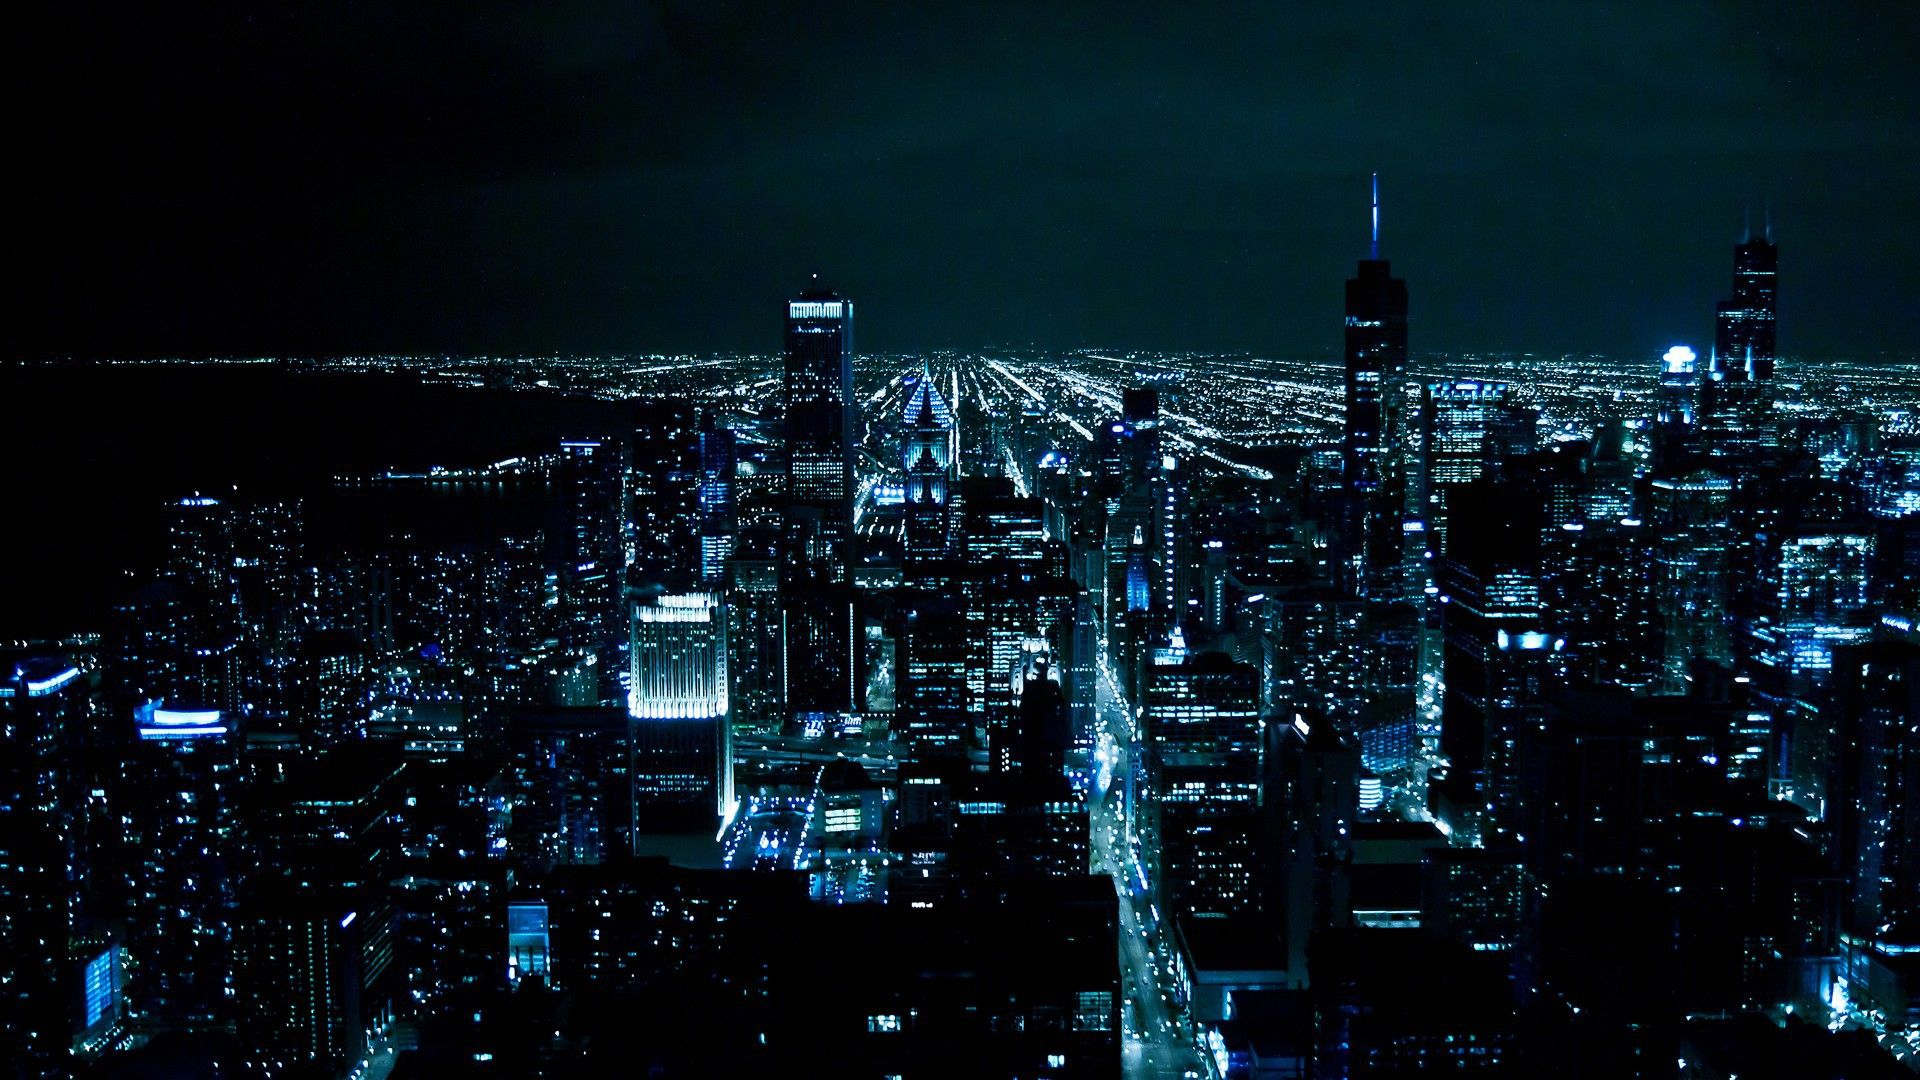 Night City Wallpapers Widescreen